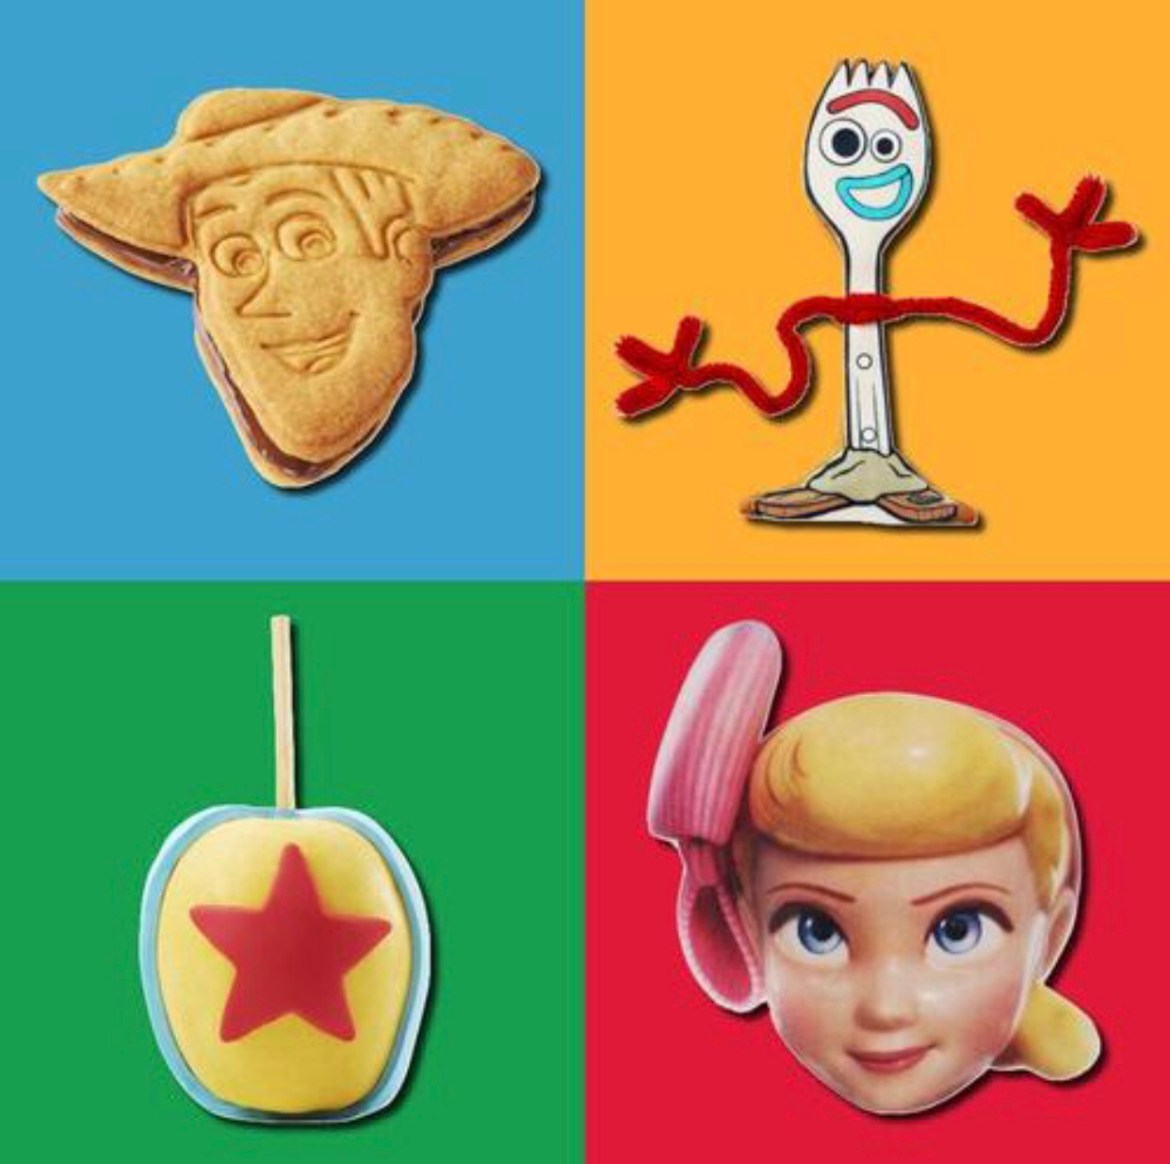 Sneak Peek at Toy Story Play Days Treats at Disneyland Paris!